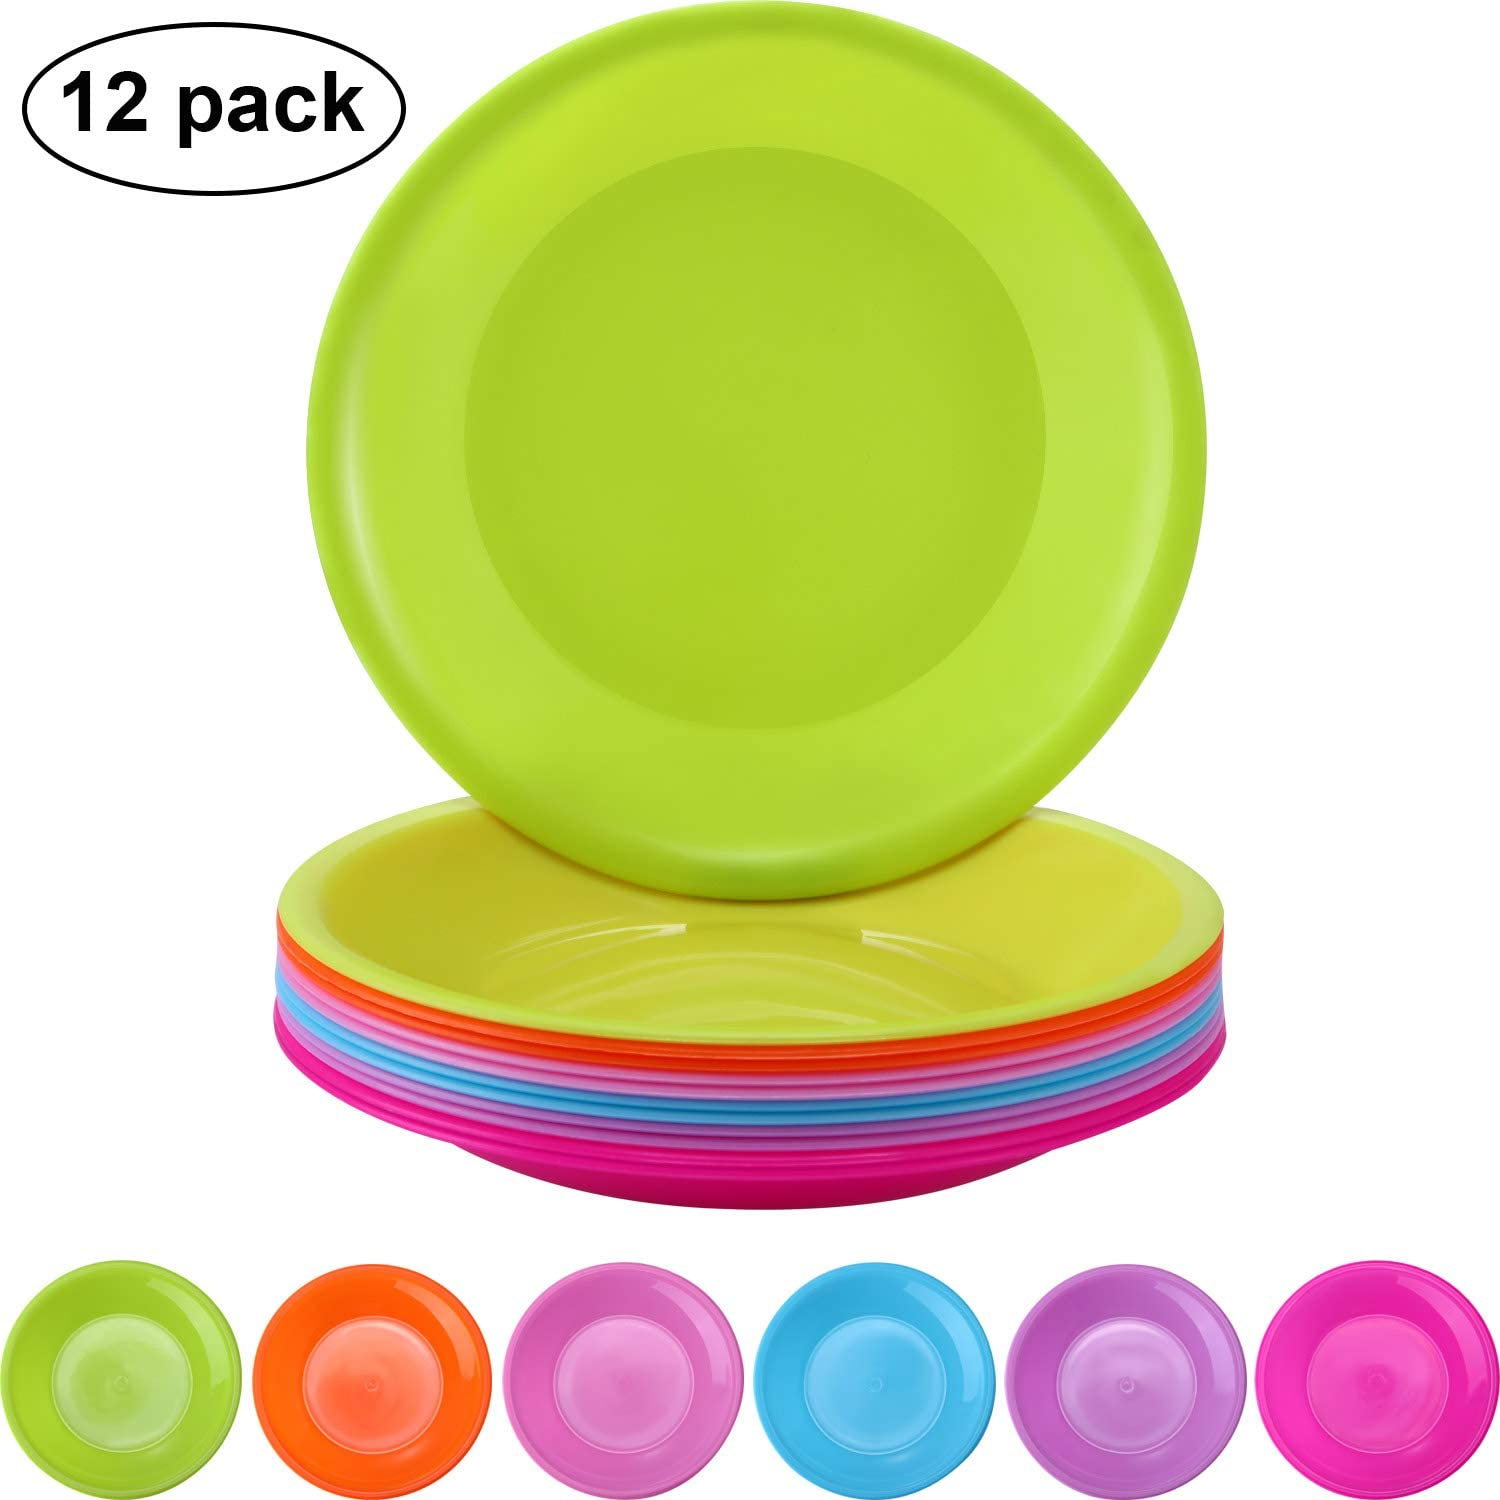 12 Pieces Colorful Plate Set Plastic Snack Plate Small Plates Picnic Plates, Microwave and Dishwasher Safe, 6 Colors